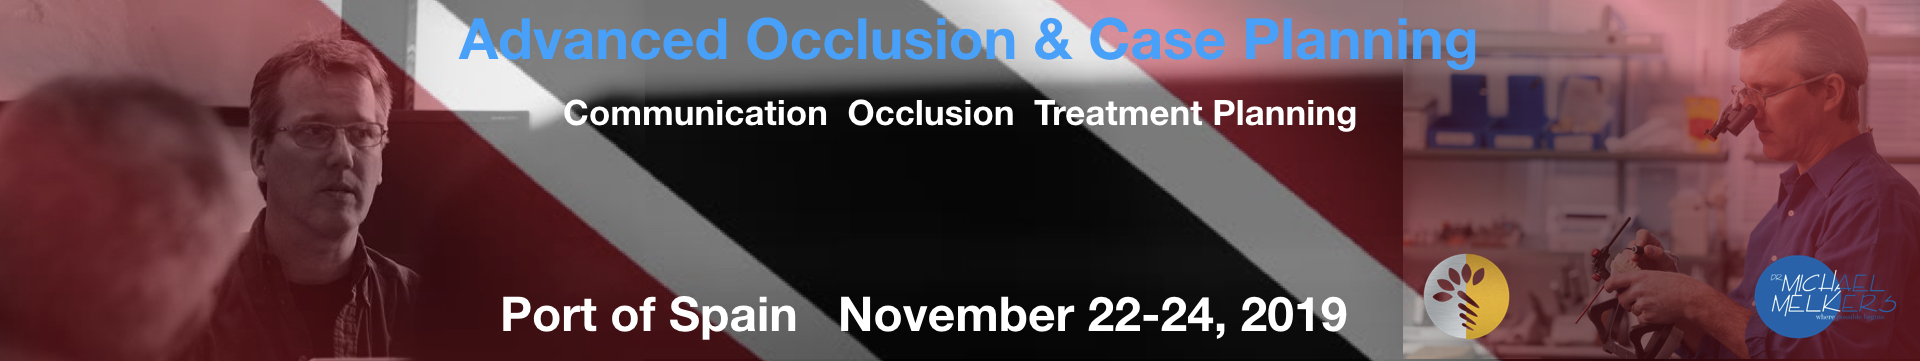 Occlusion in the Caribbean: Advanced Occlusion & Case Planning Workshop